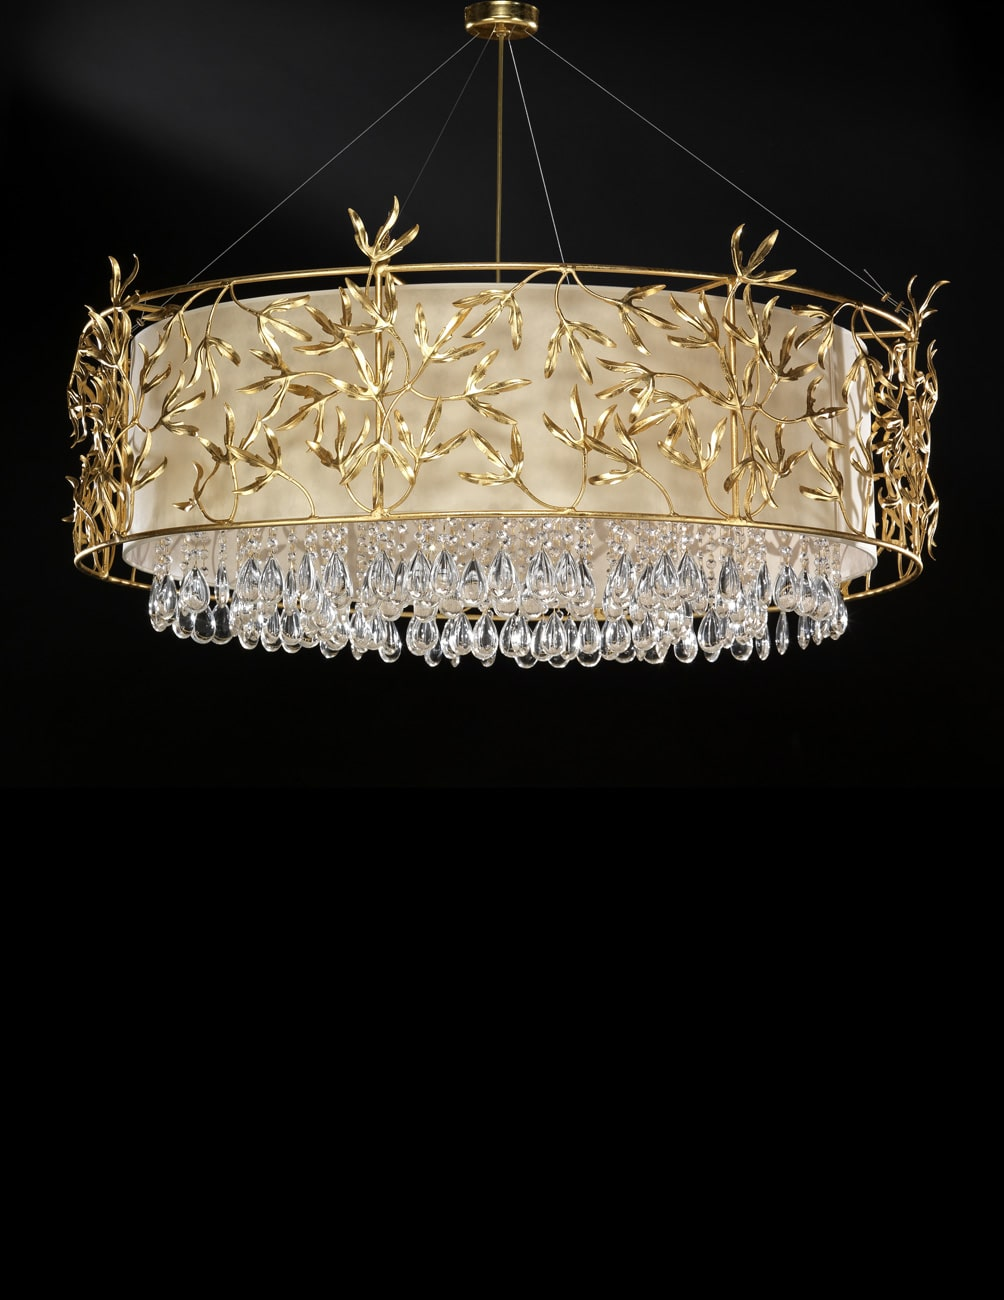 decorative lighting chandeliers 23